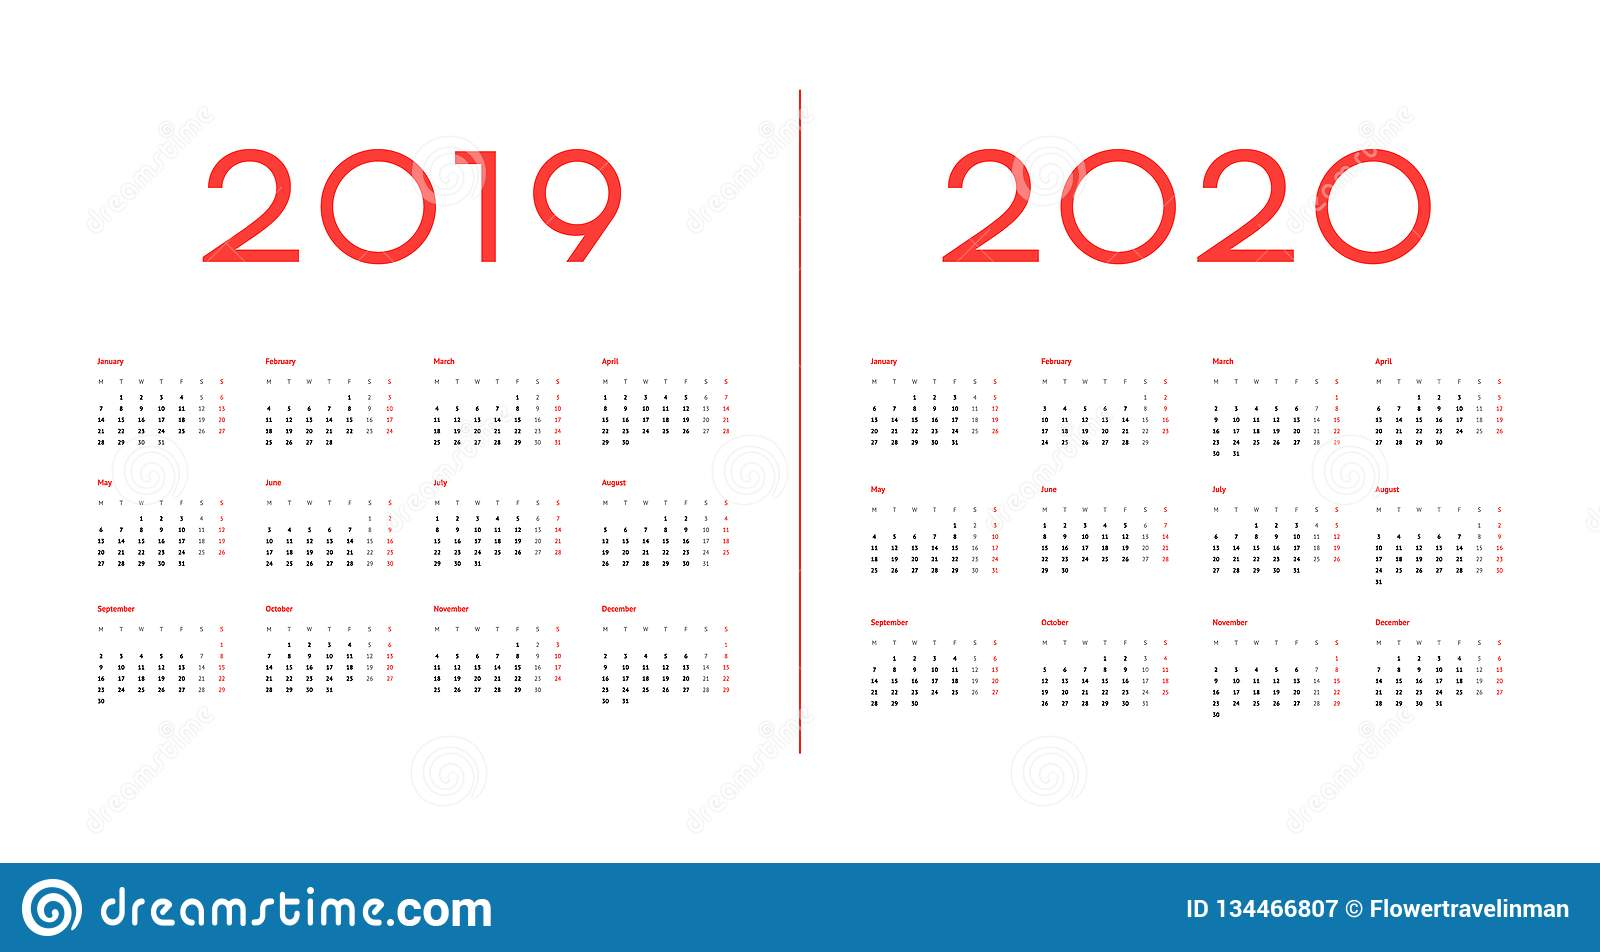 2019 and 2020 Calendar template vector image